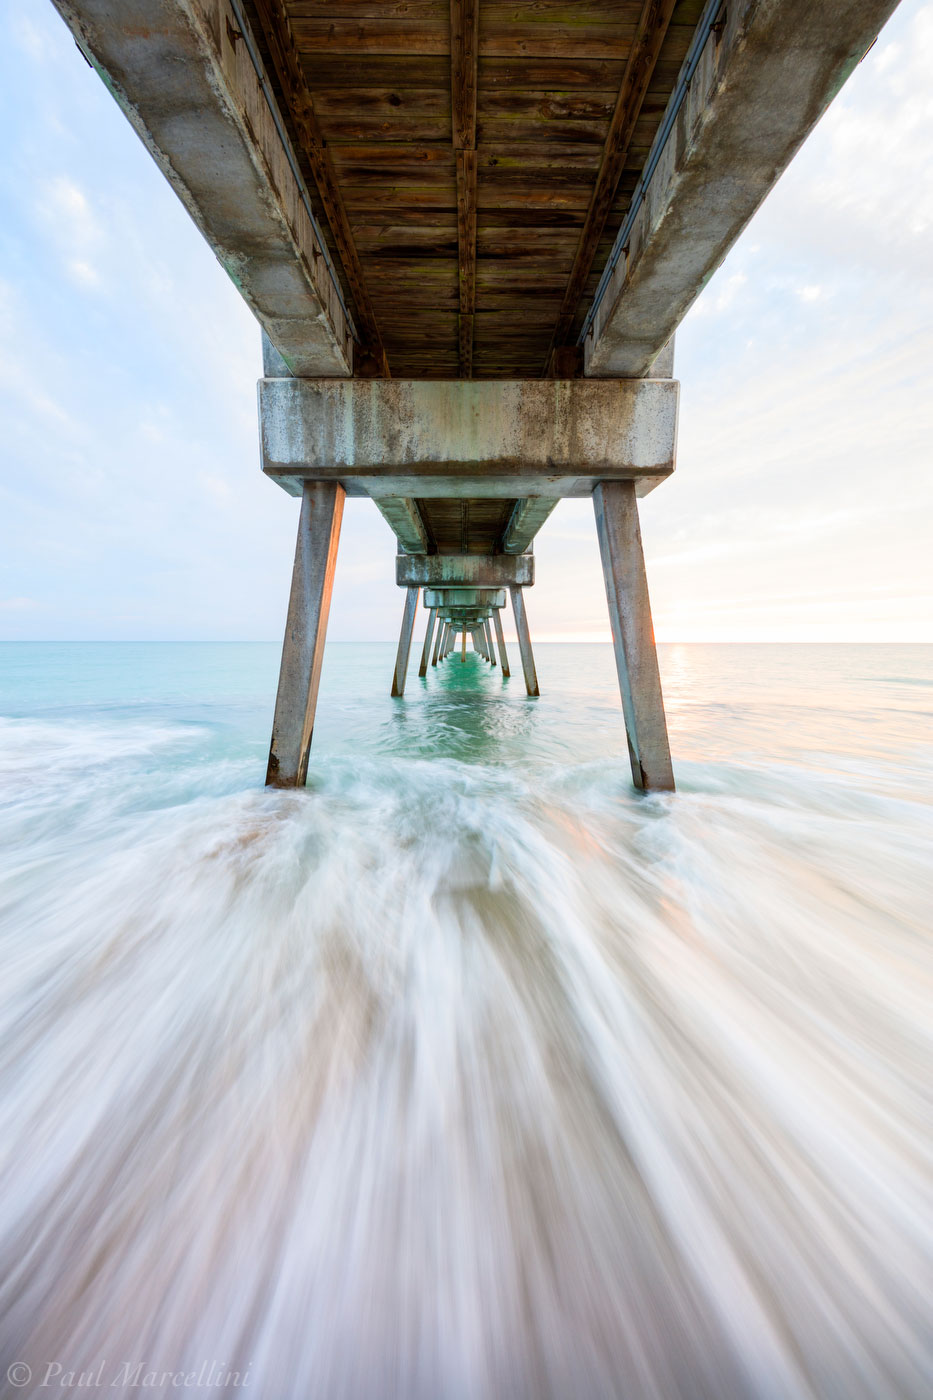 vero beach, florida, sunrise, beach, pier, photo